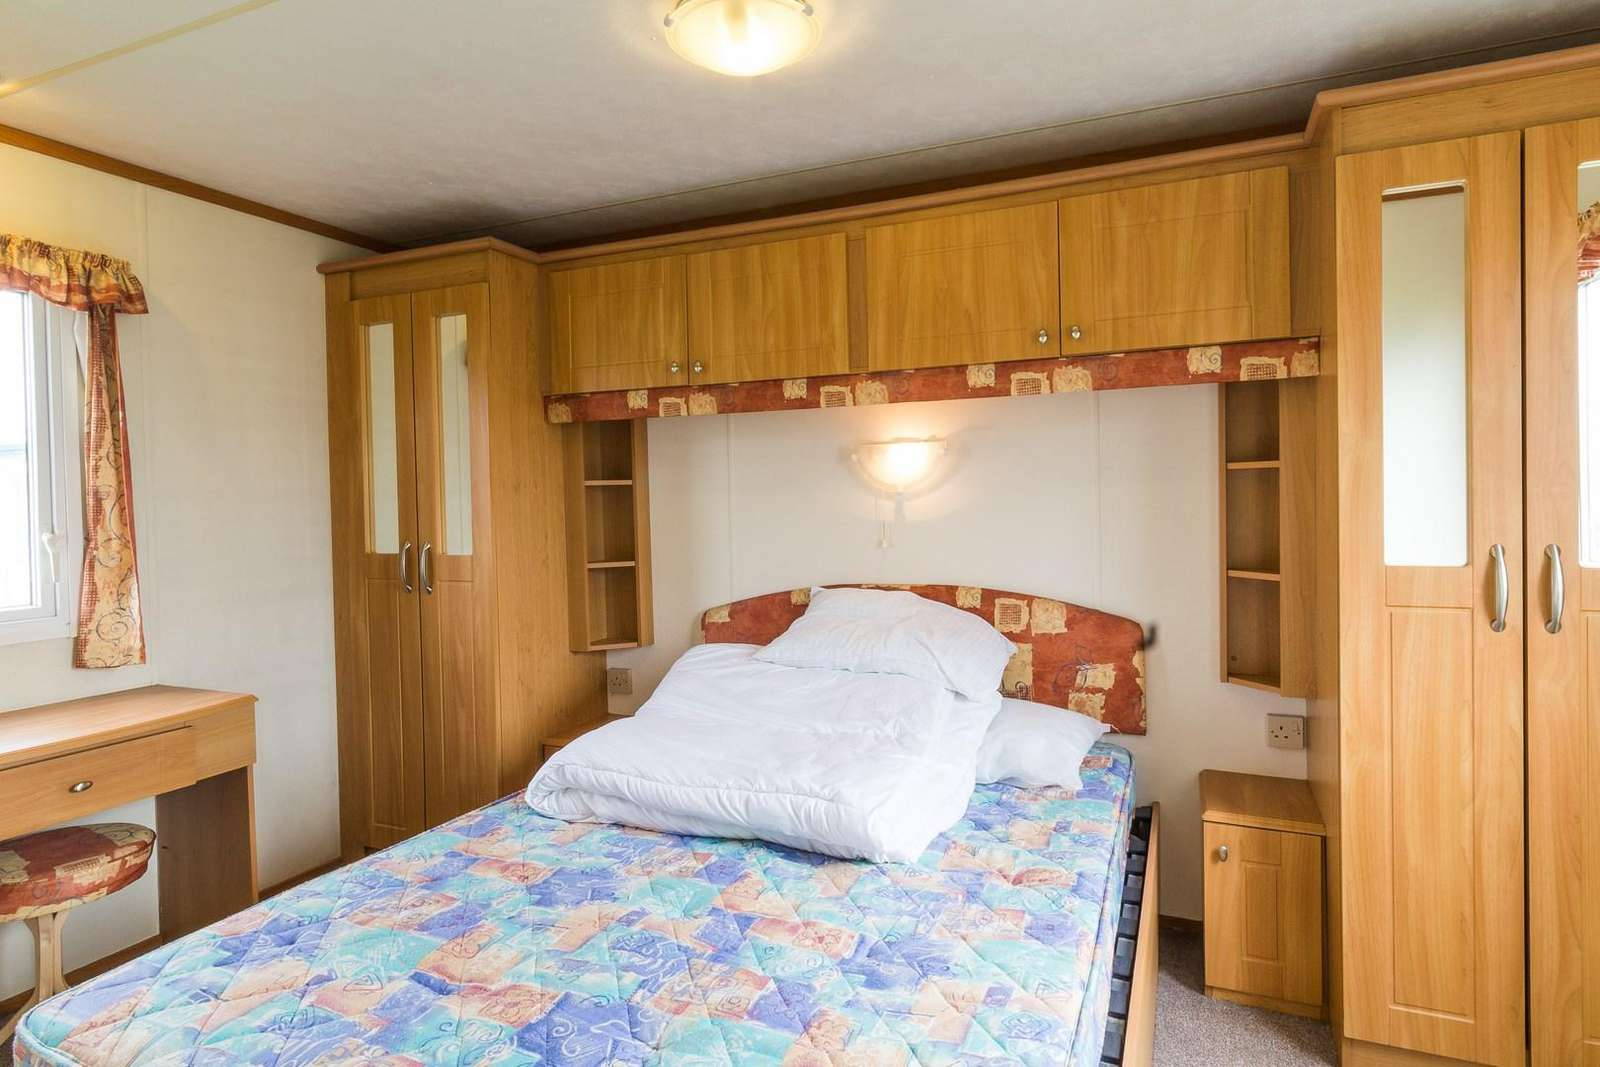 Come and stay in this private accommodation at California Cliffs Holiday Park.